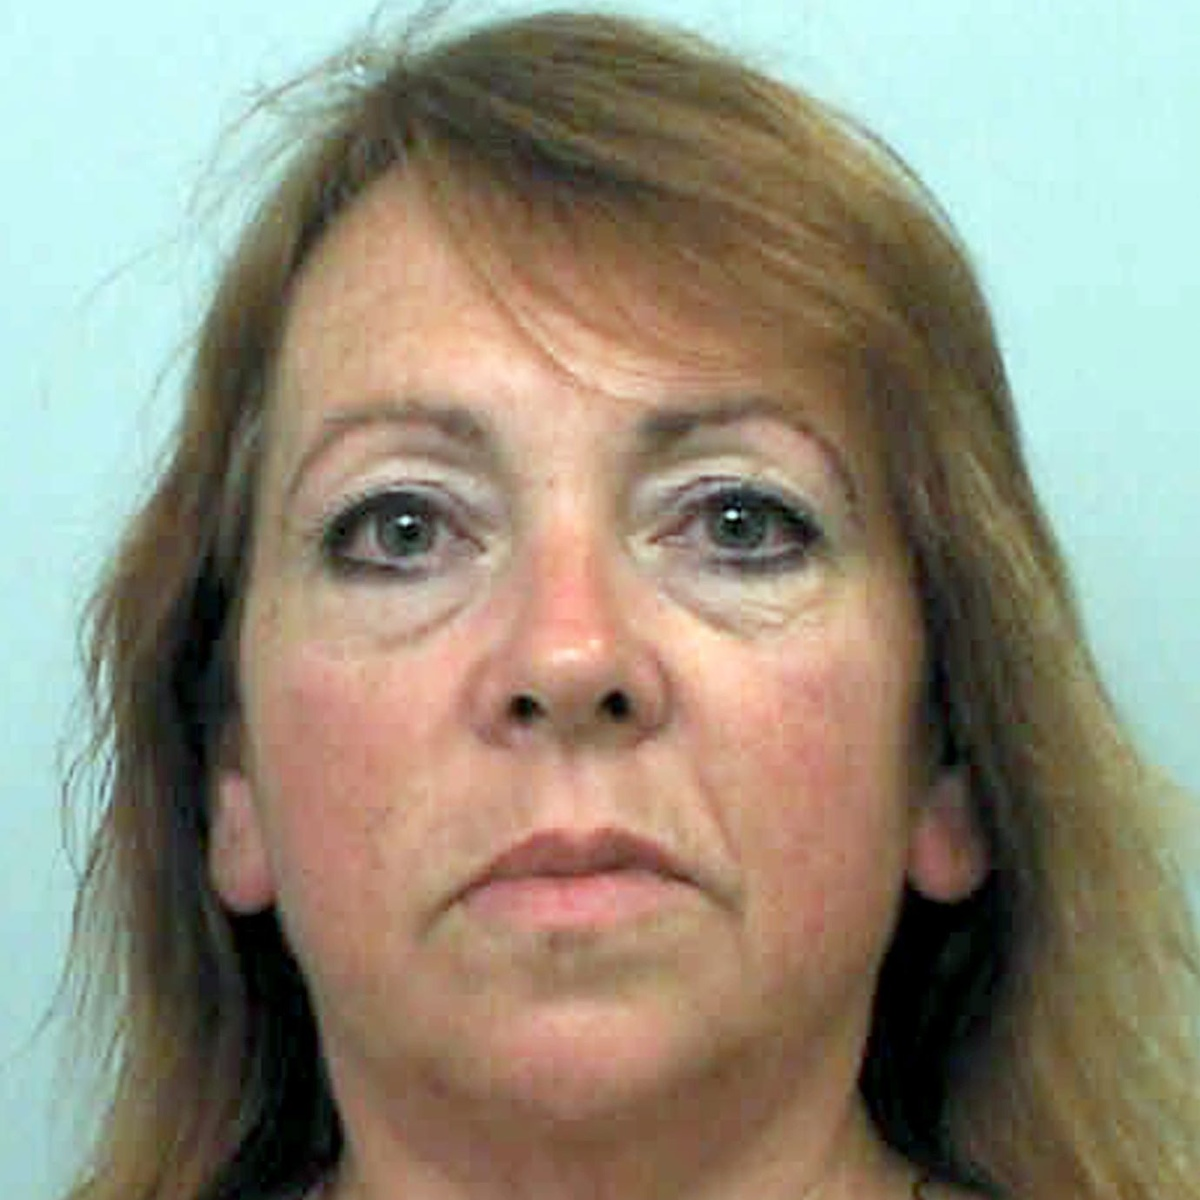 A Scheming mum who conned HER OWN family out of £600K and then went on the run is jailed